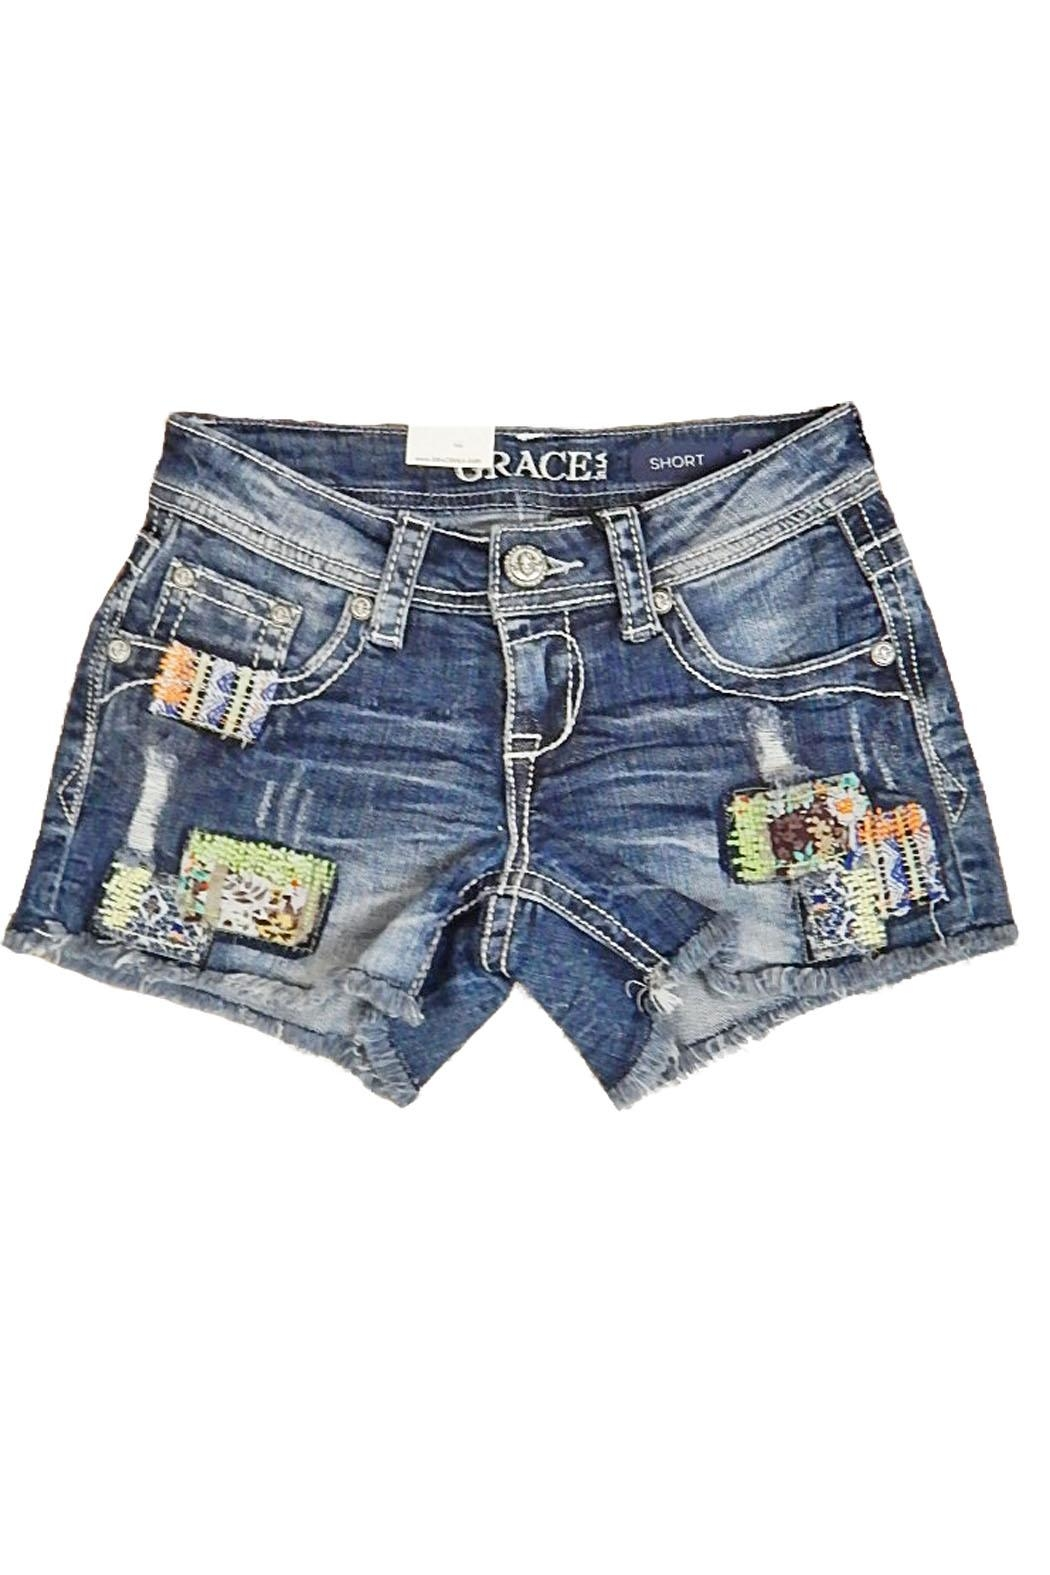 Grace in L.A. Indigo Patch Shorts - Main Image